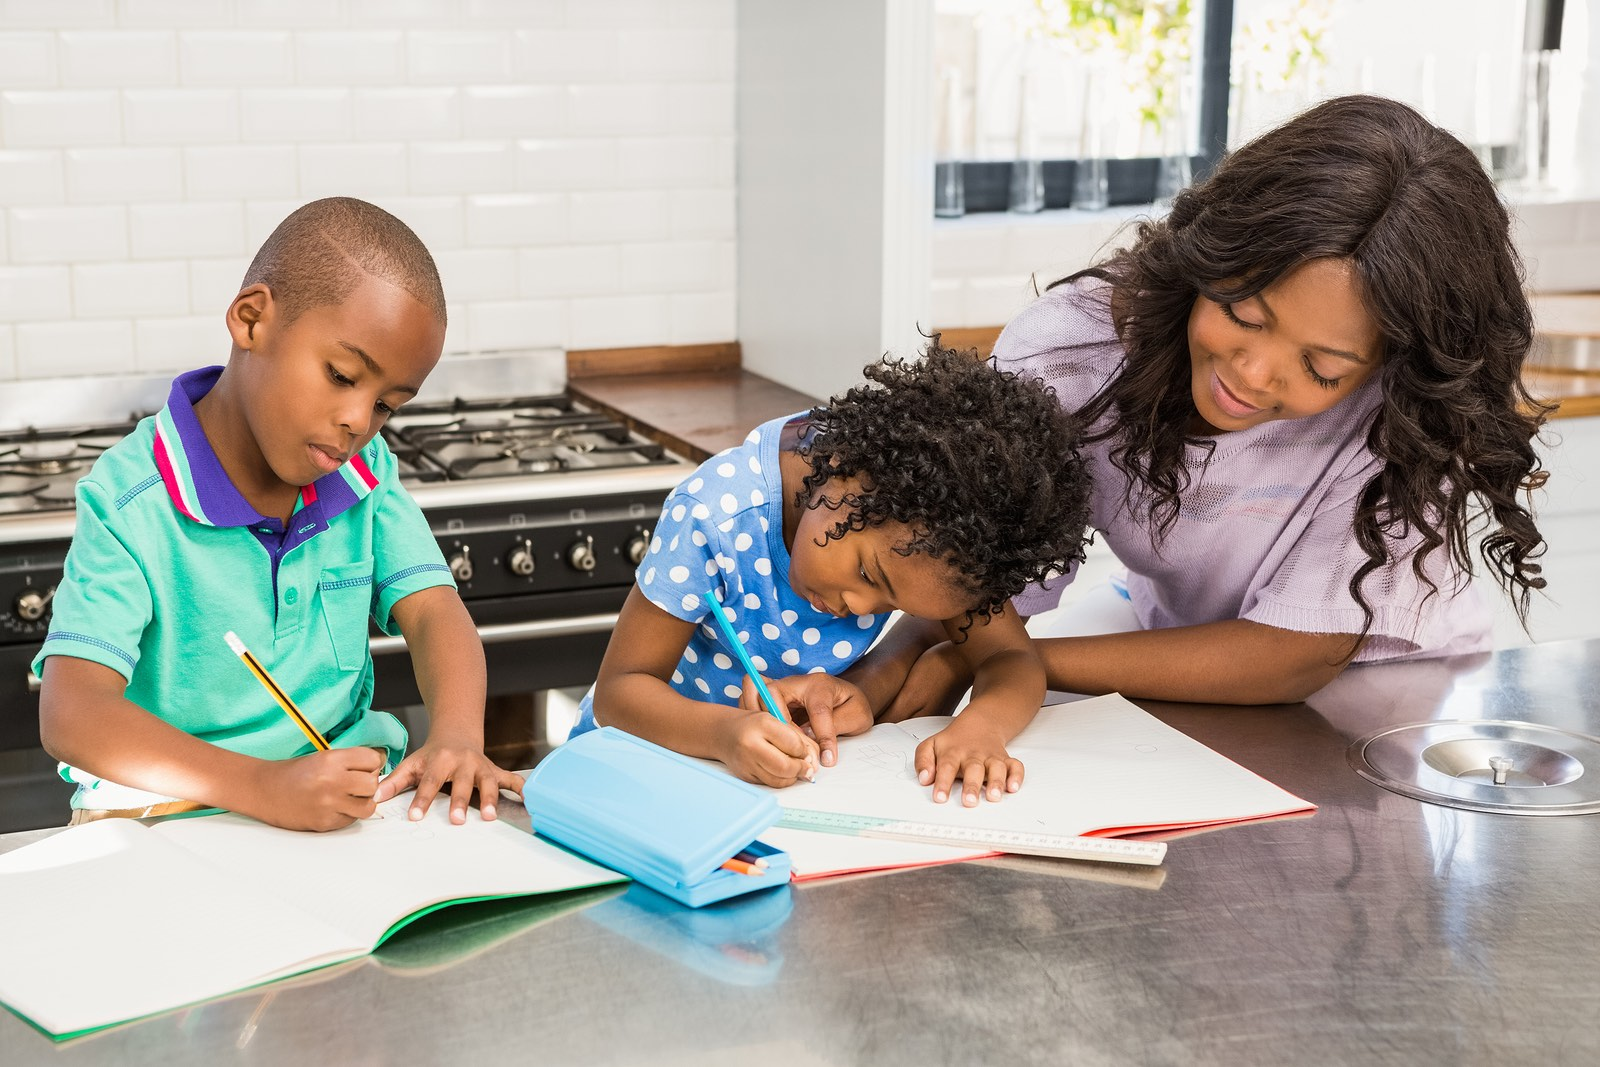 Nation's future depends on current educated children